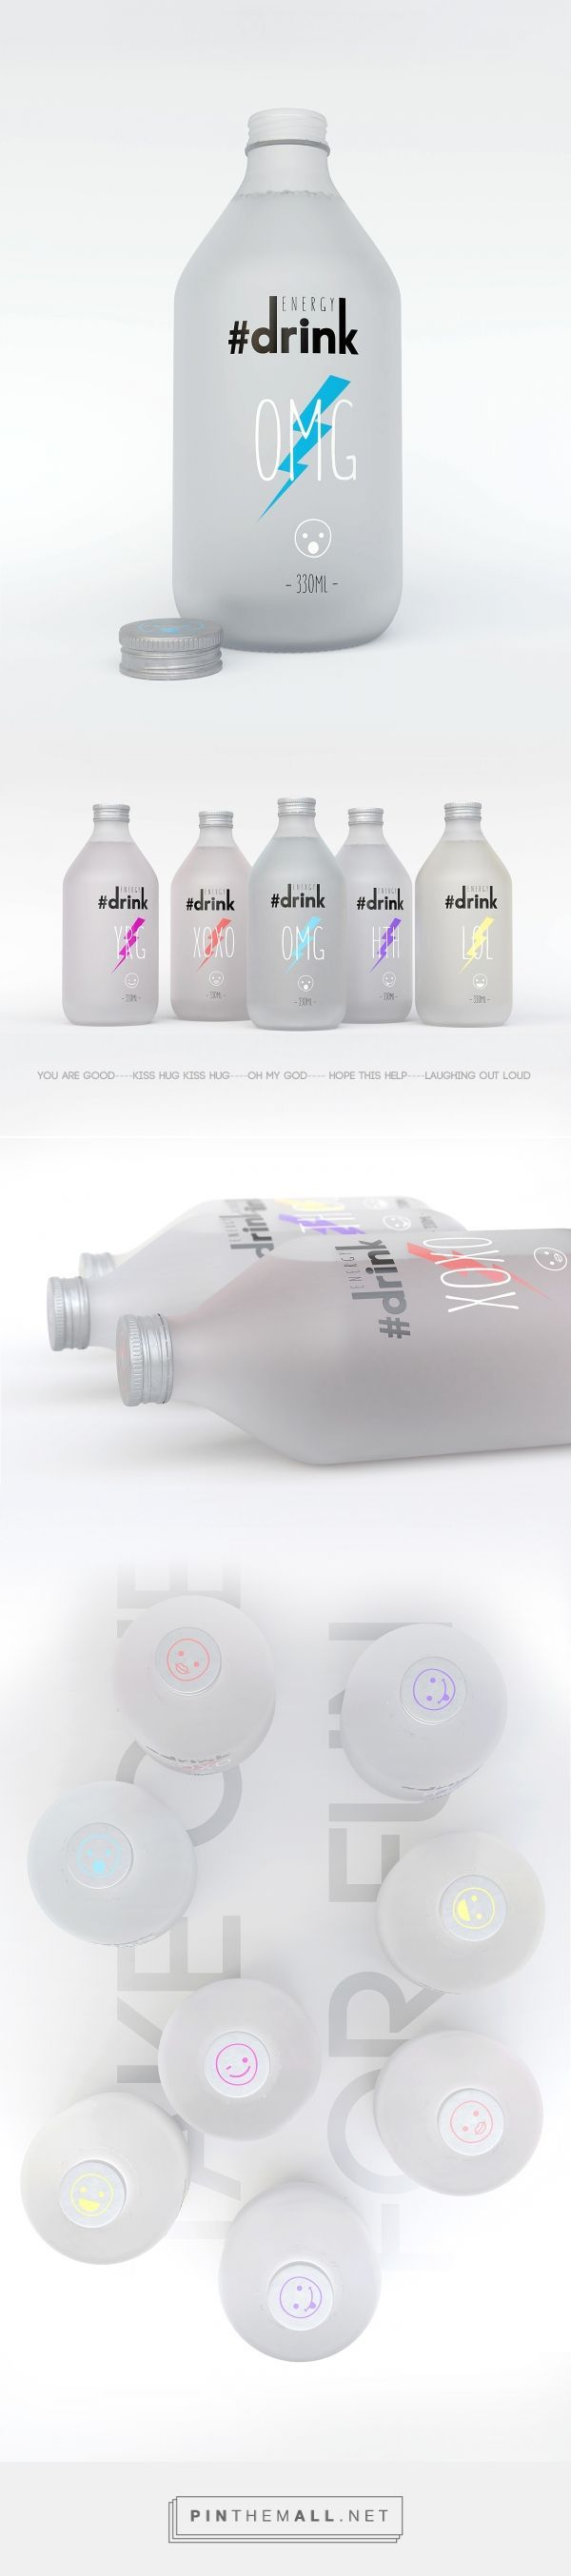 Art direction, packaging and branding for a Millennial Energy Drink on Behance by Doniyor Mamanov Almaty, Kazakhstan curated by Packaging Diva PD. OMG, hashtags and emoji's too : )